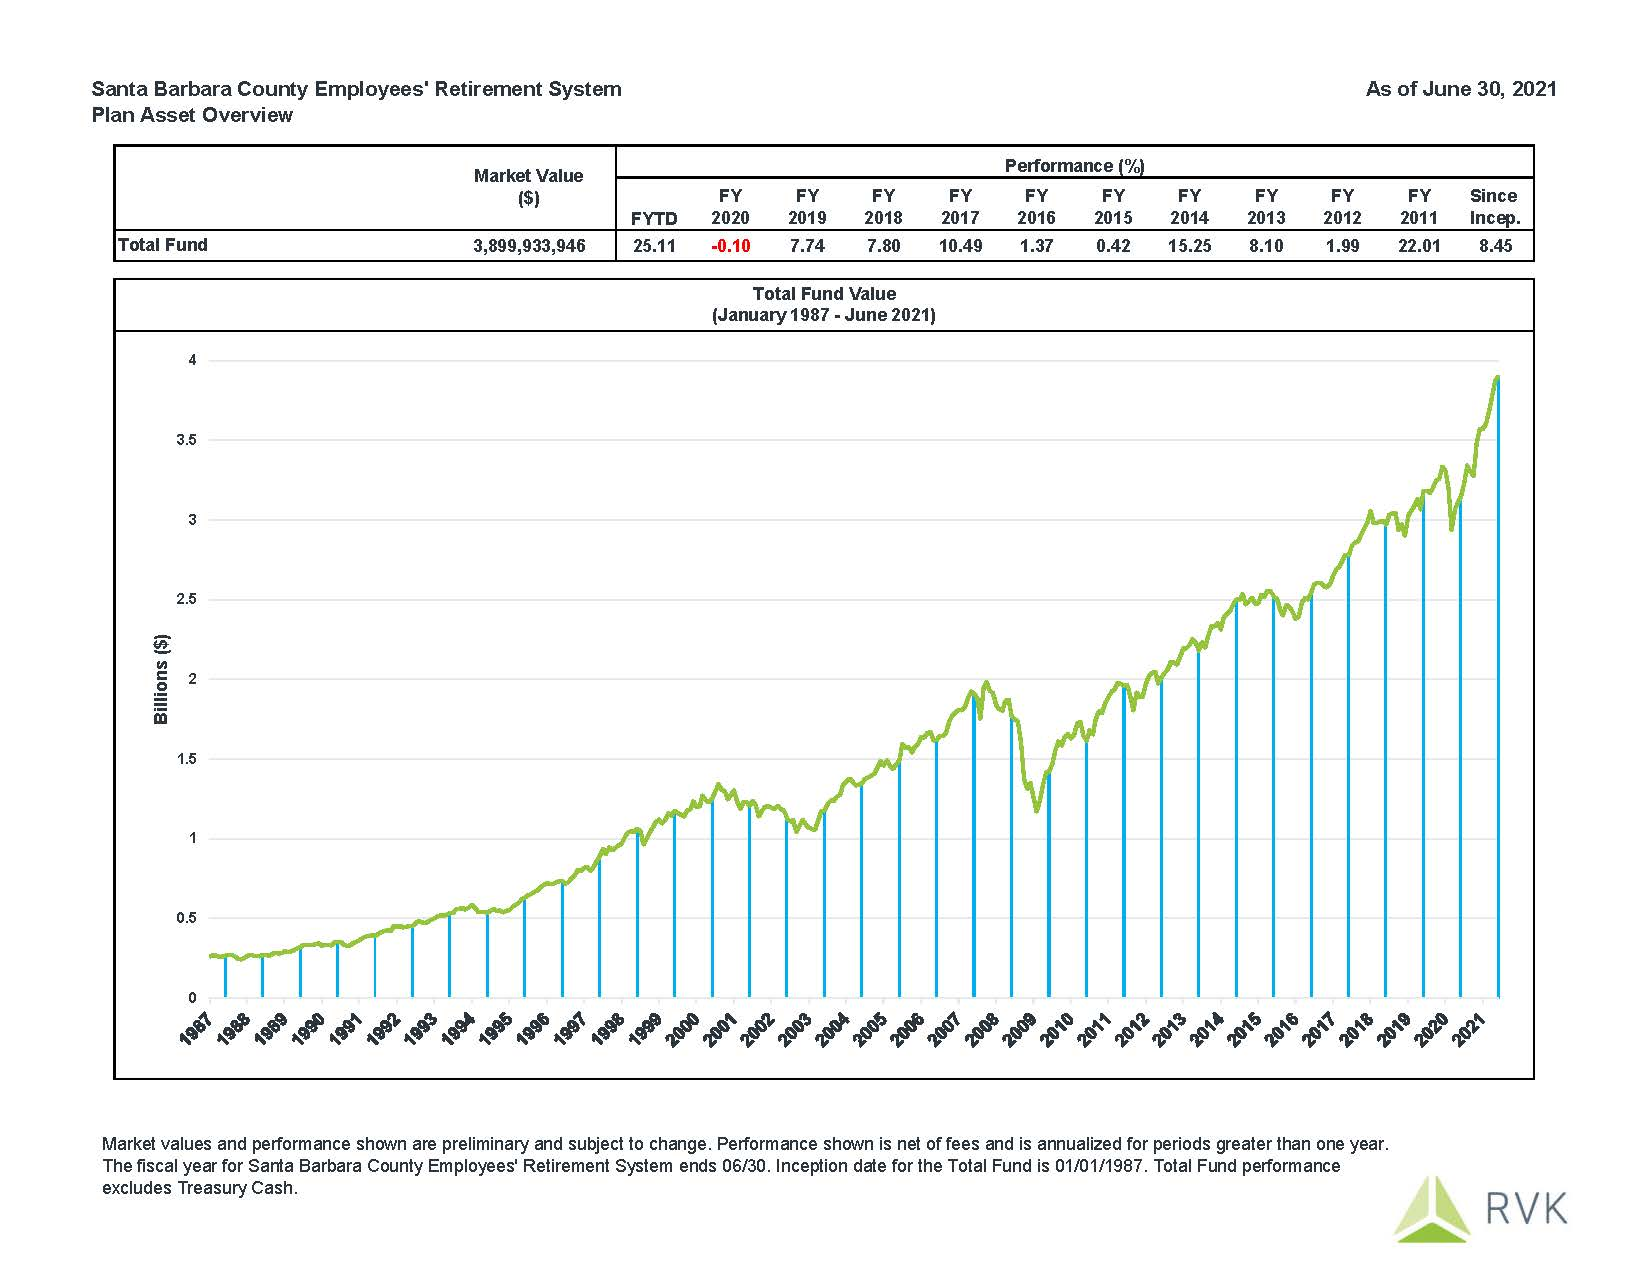 June 2021 Fund Performance: Fiscal Year to Date performance is 25.11%.